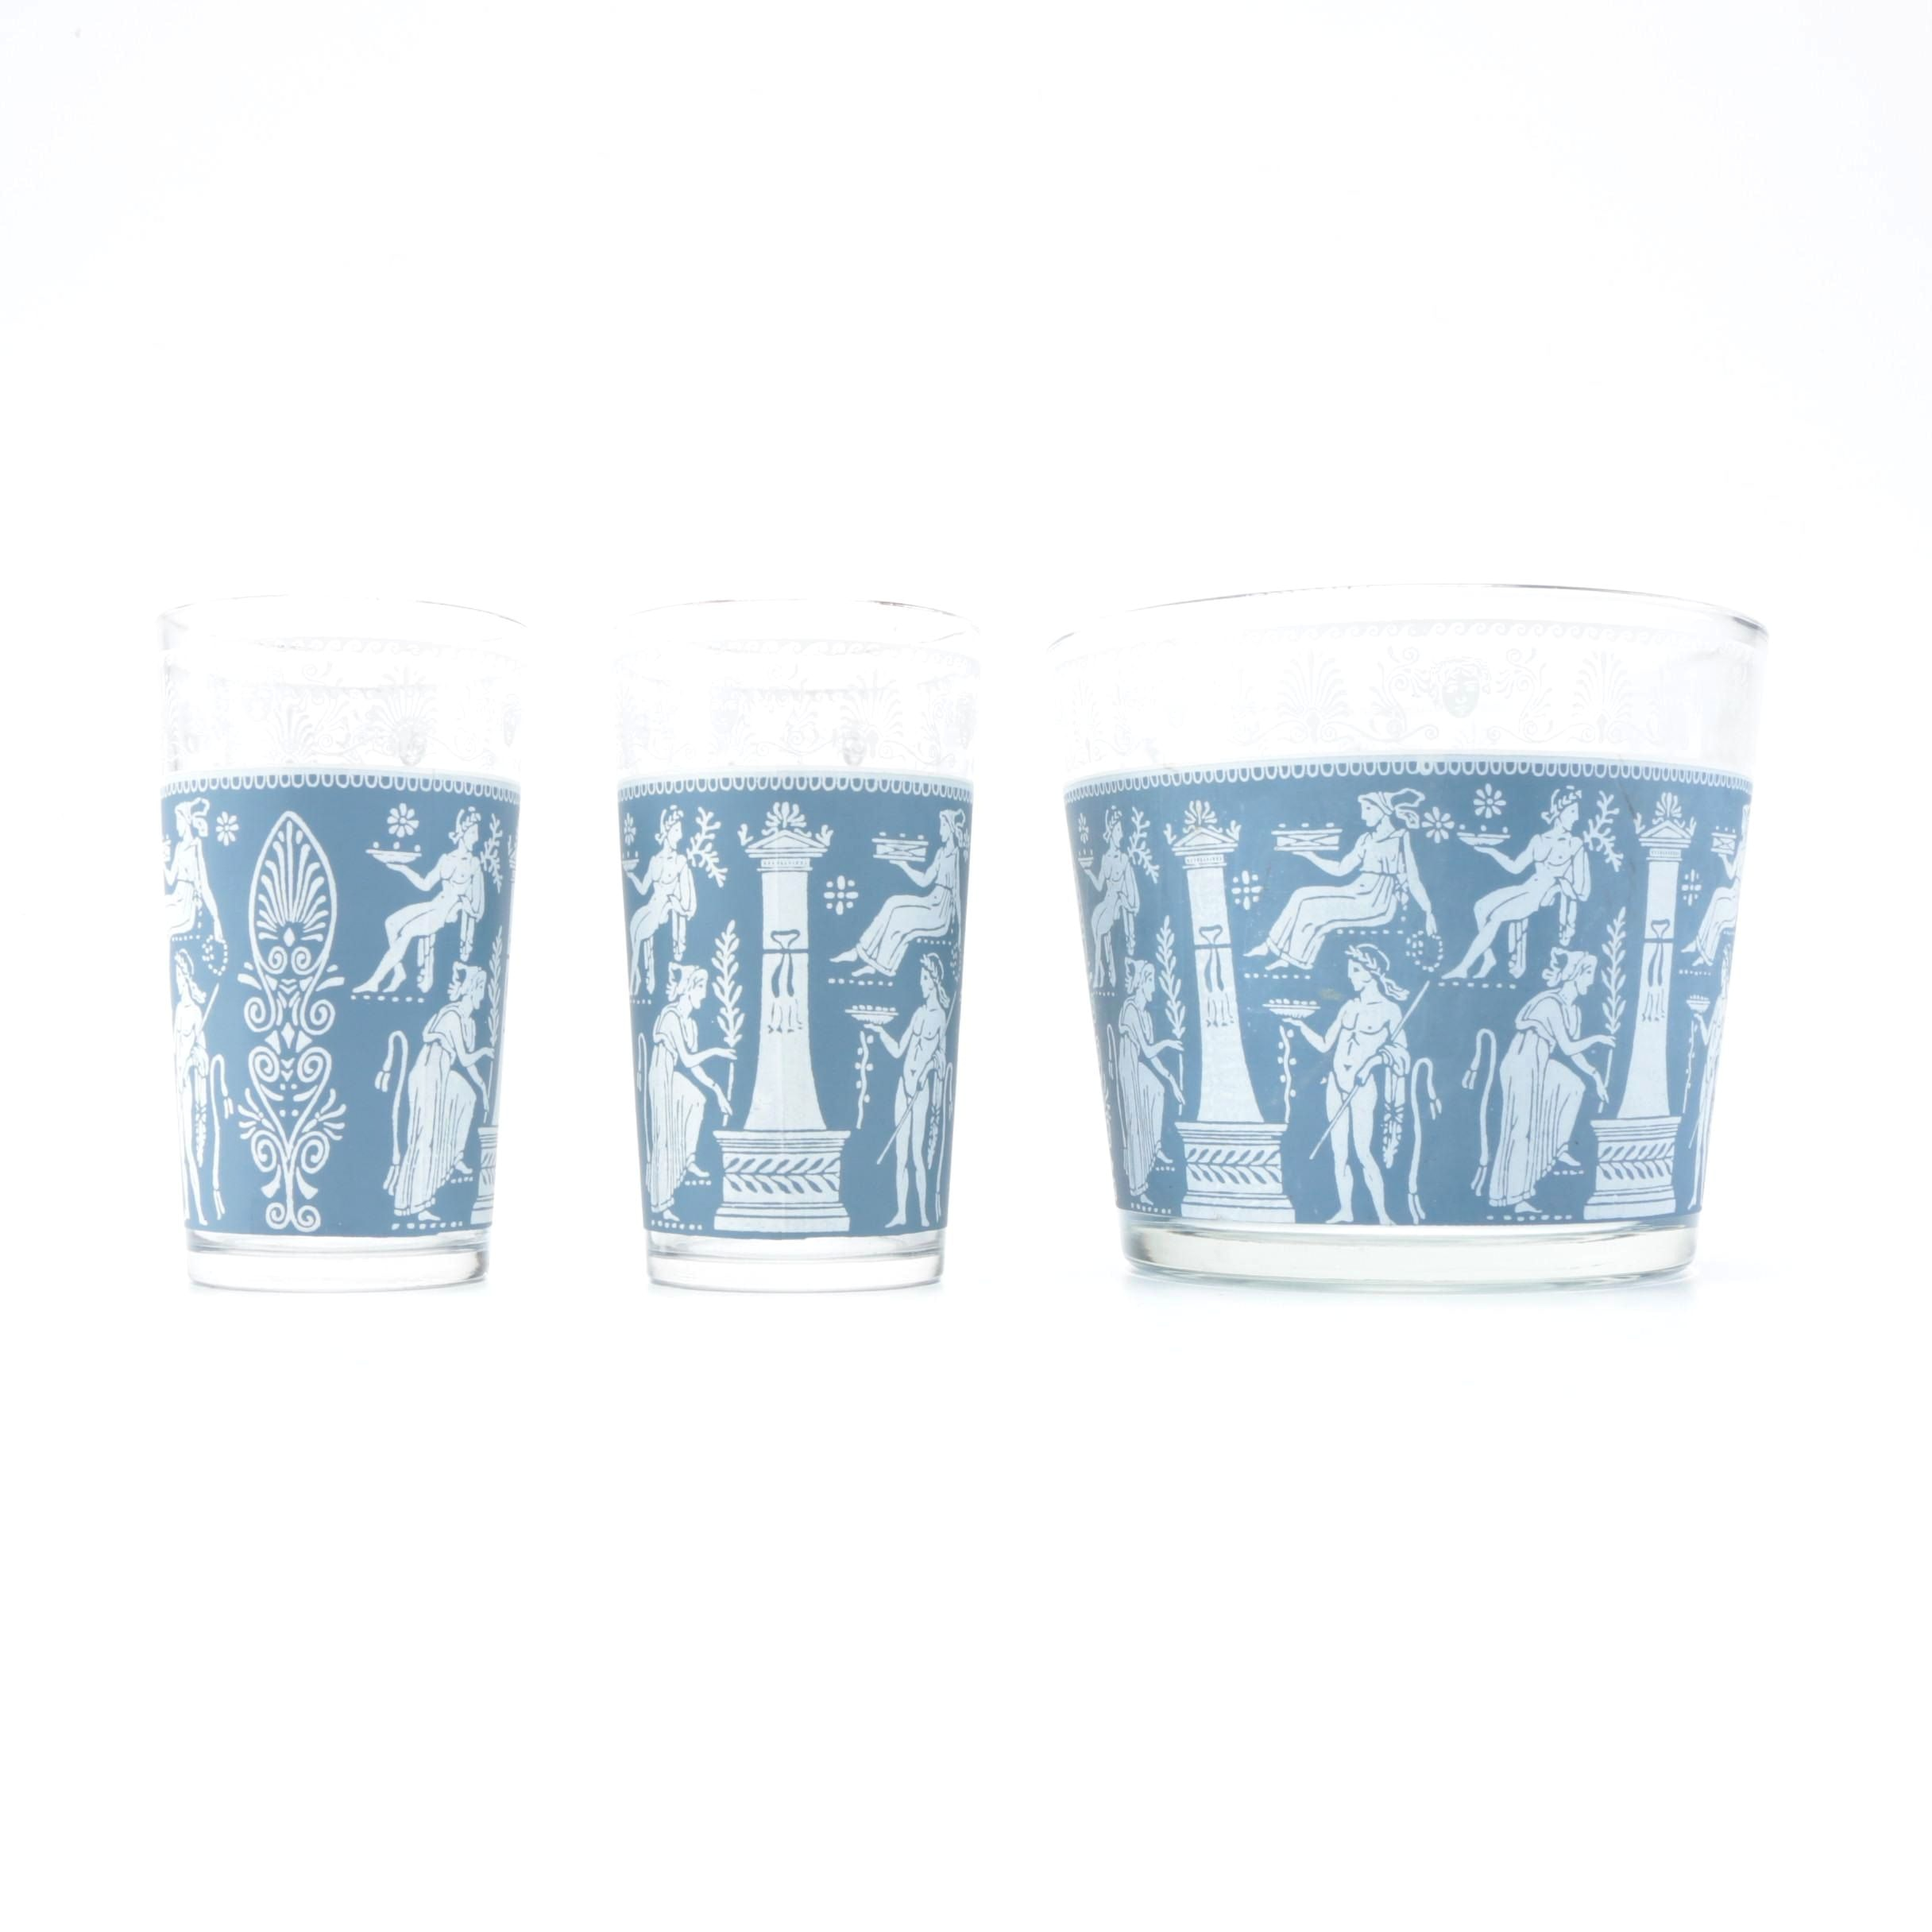 Grecian Style Ice Bucket and Drinking Glasses